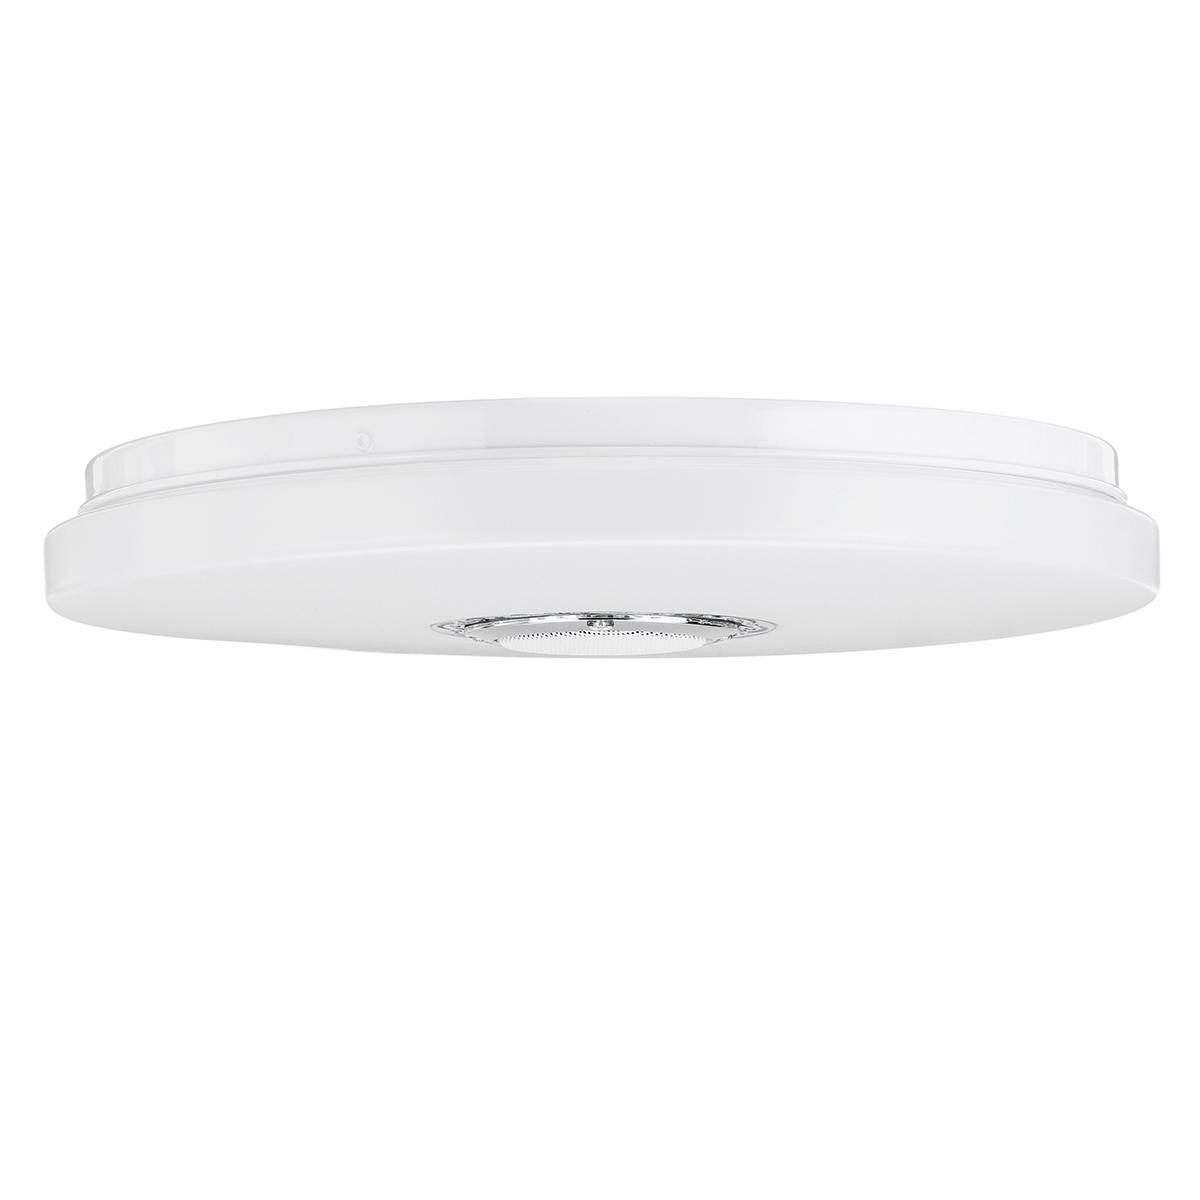 DIGOO DG-MD102 AC185-265V 48W Stepless Dimming Color Temperature Adjustable Remote Control Ultra-thin Ceiling Light - 3